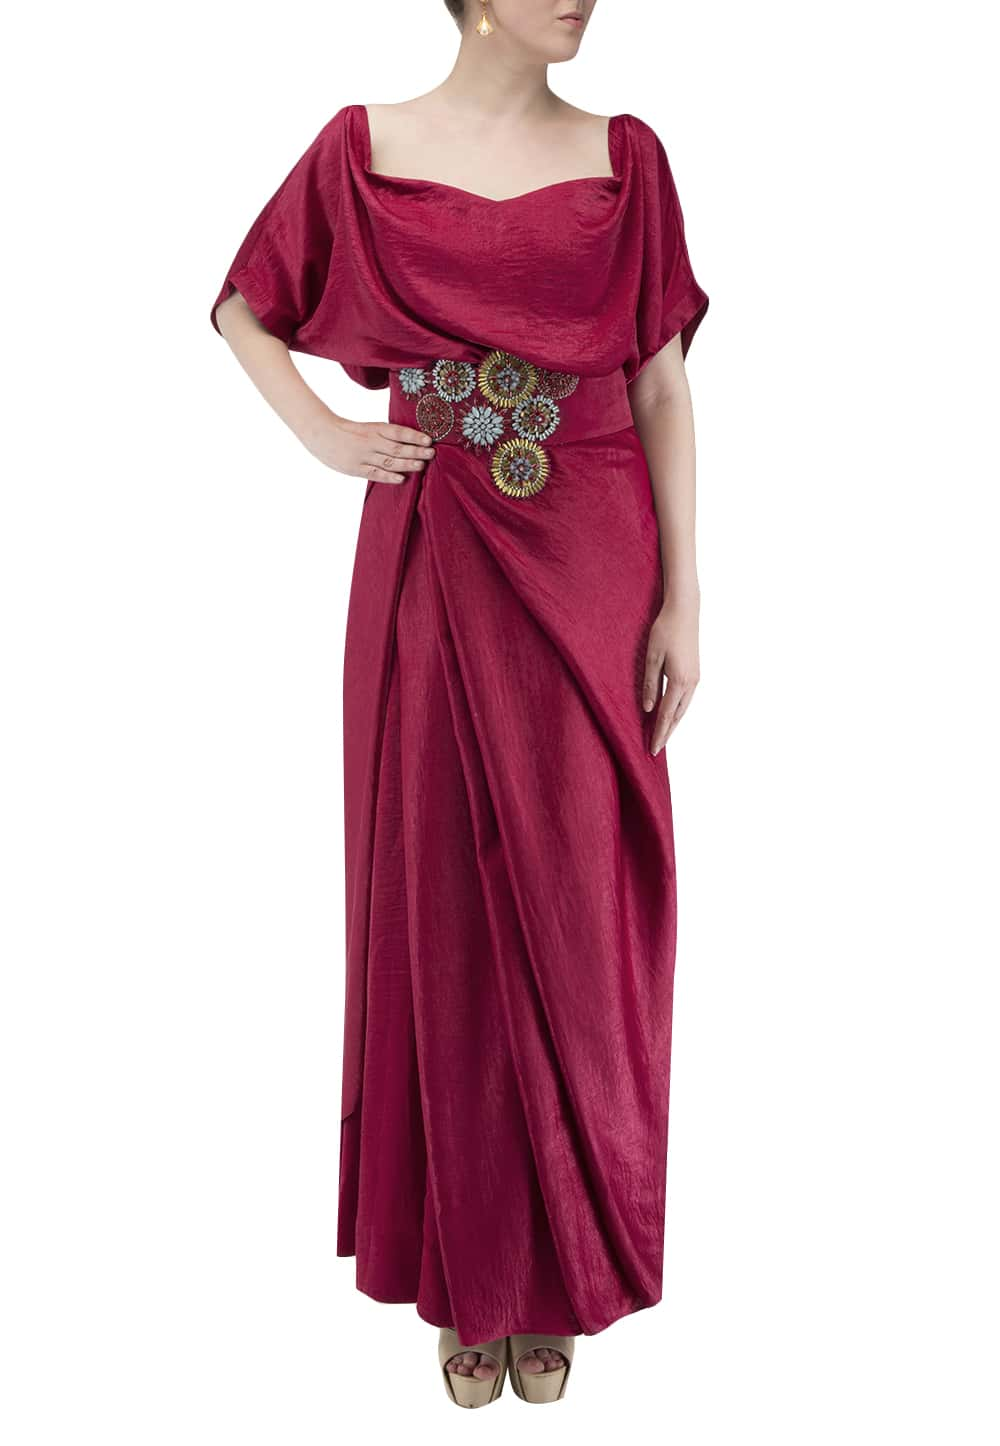 Fuschia Pink Off Shoulder Drape Dress With Embellished Belt Available Only At Ibfw